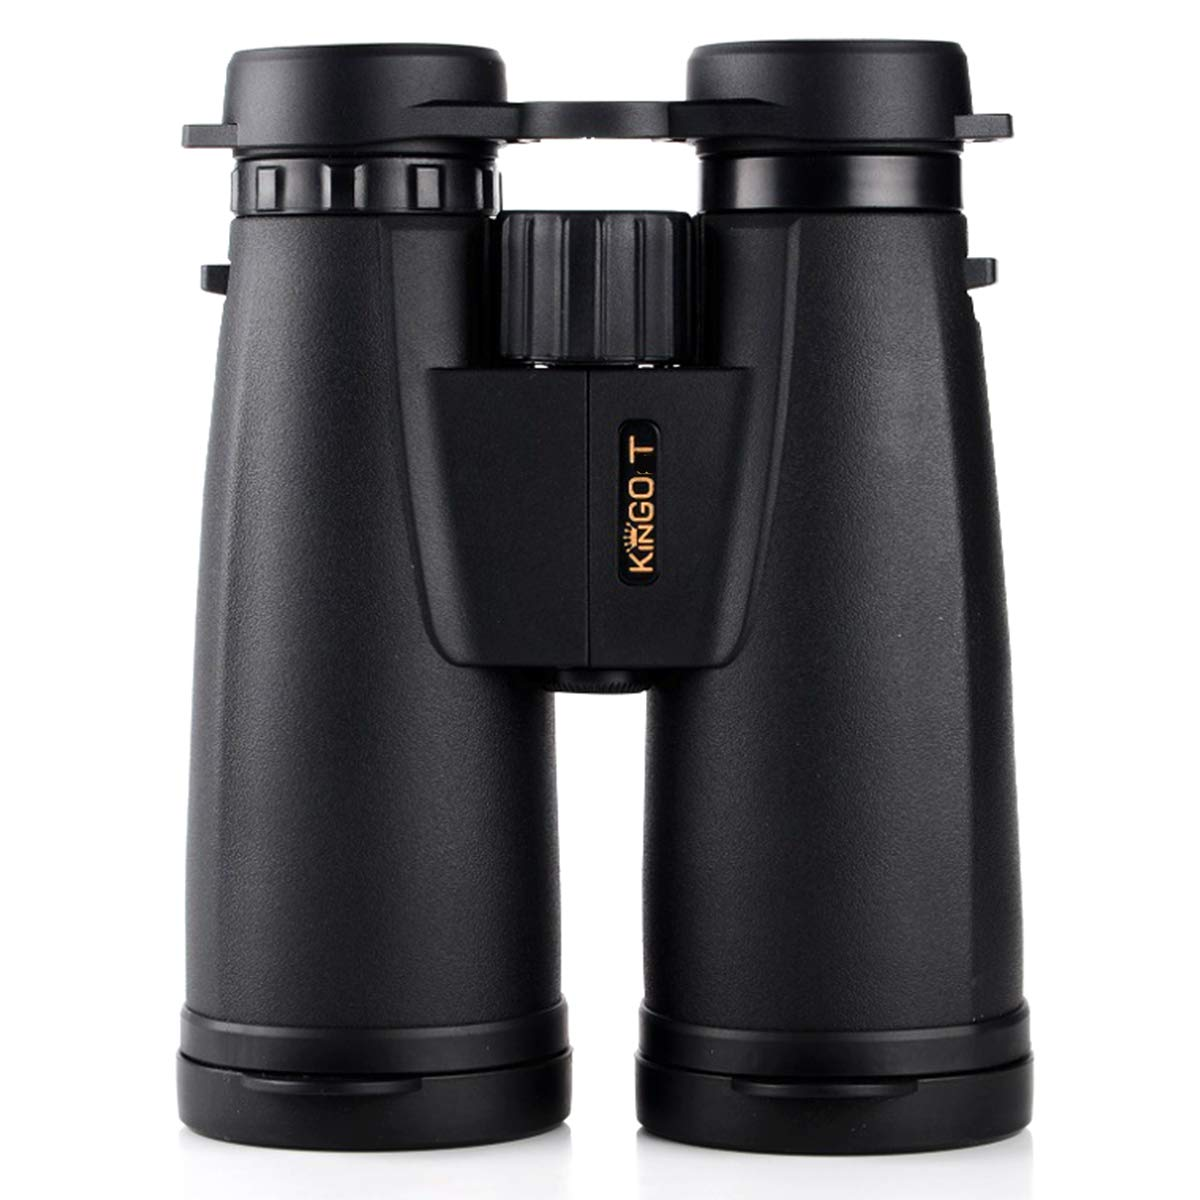 12x50 Binoculars for Adults Night Vision and Day with Big Vision- 18mm Large View Eyepiece - 16.5mm Super Bright BAK4 Prism FMC Lens - Binoculars for Birds Watching Hunting - Waterproof (BB1)